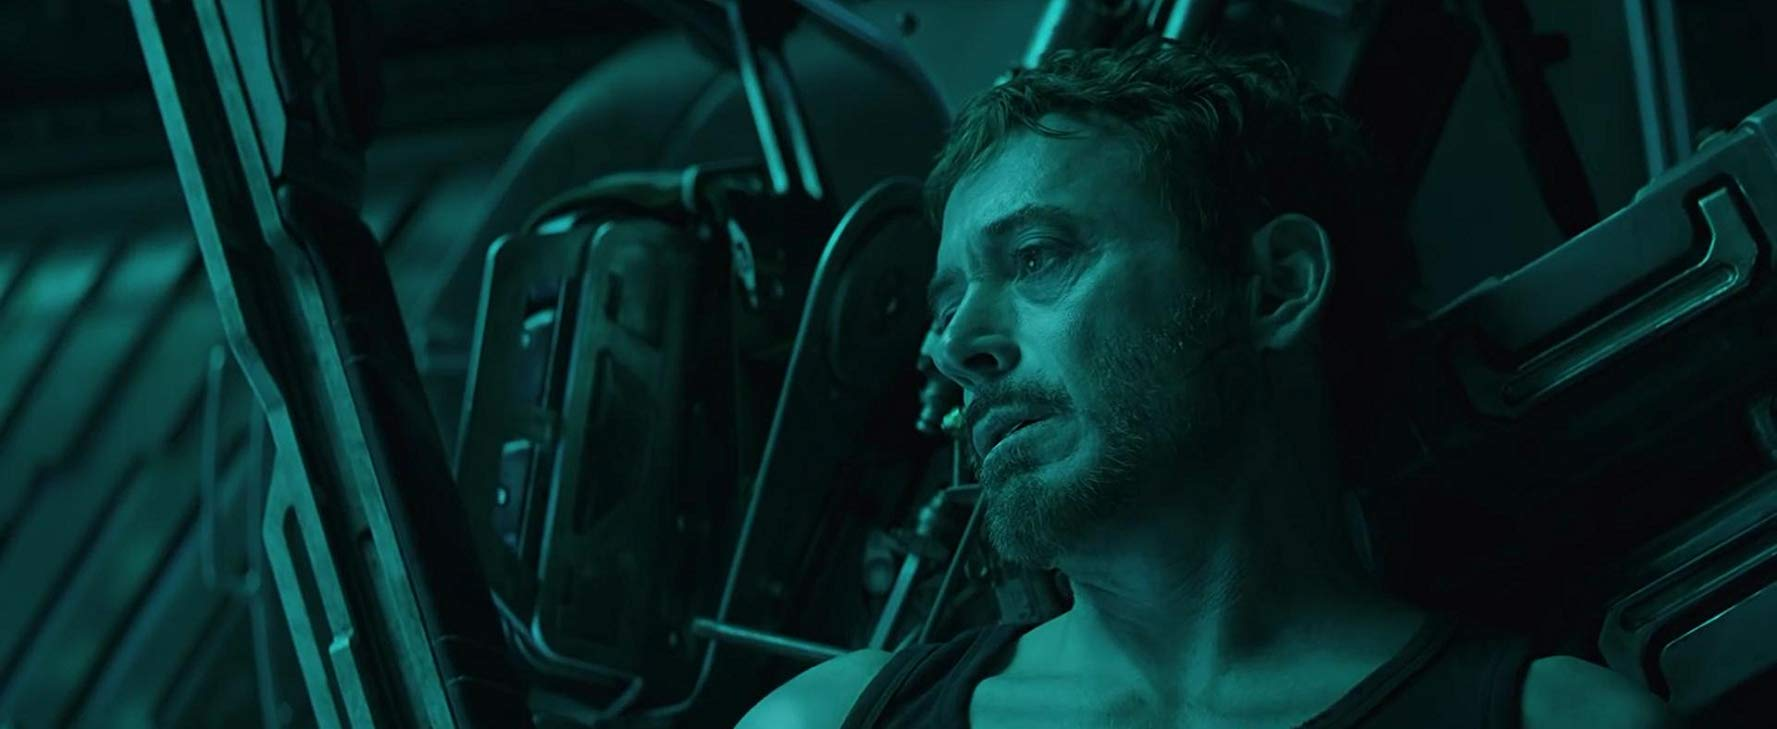 The Three Key Elements of the New Avengers: Endgame Trailer